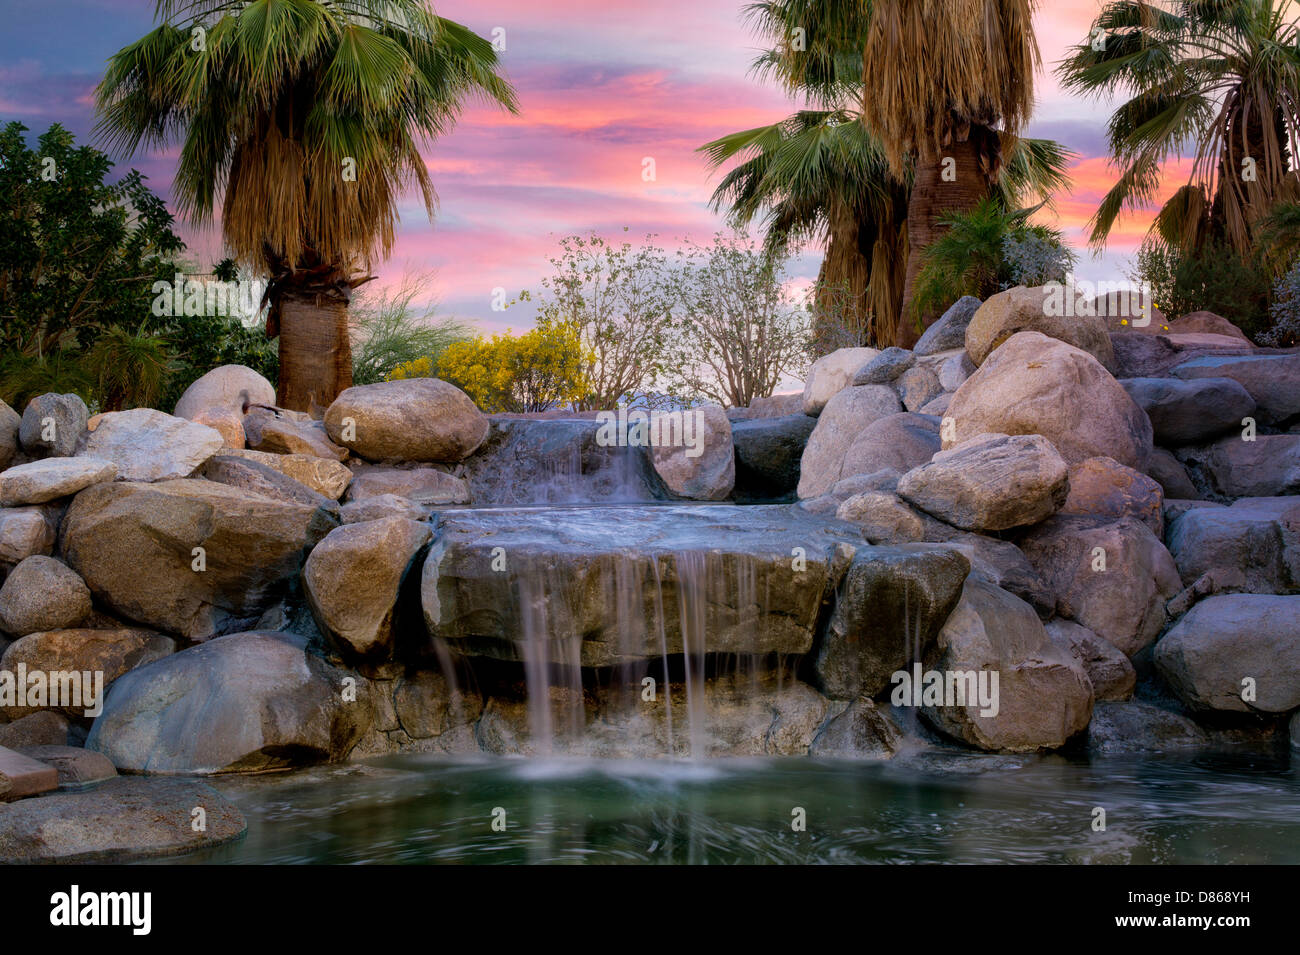 Waterfalls In Faye Sarkowsky Sculpture Garden. Palm Desert, California    Stock Image